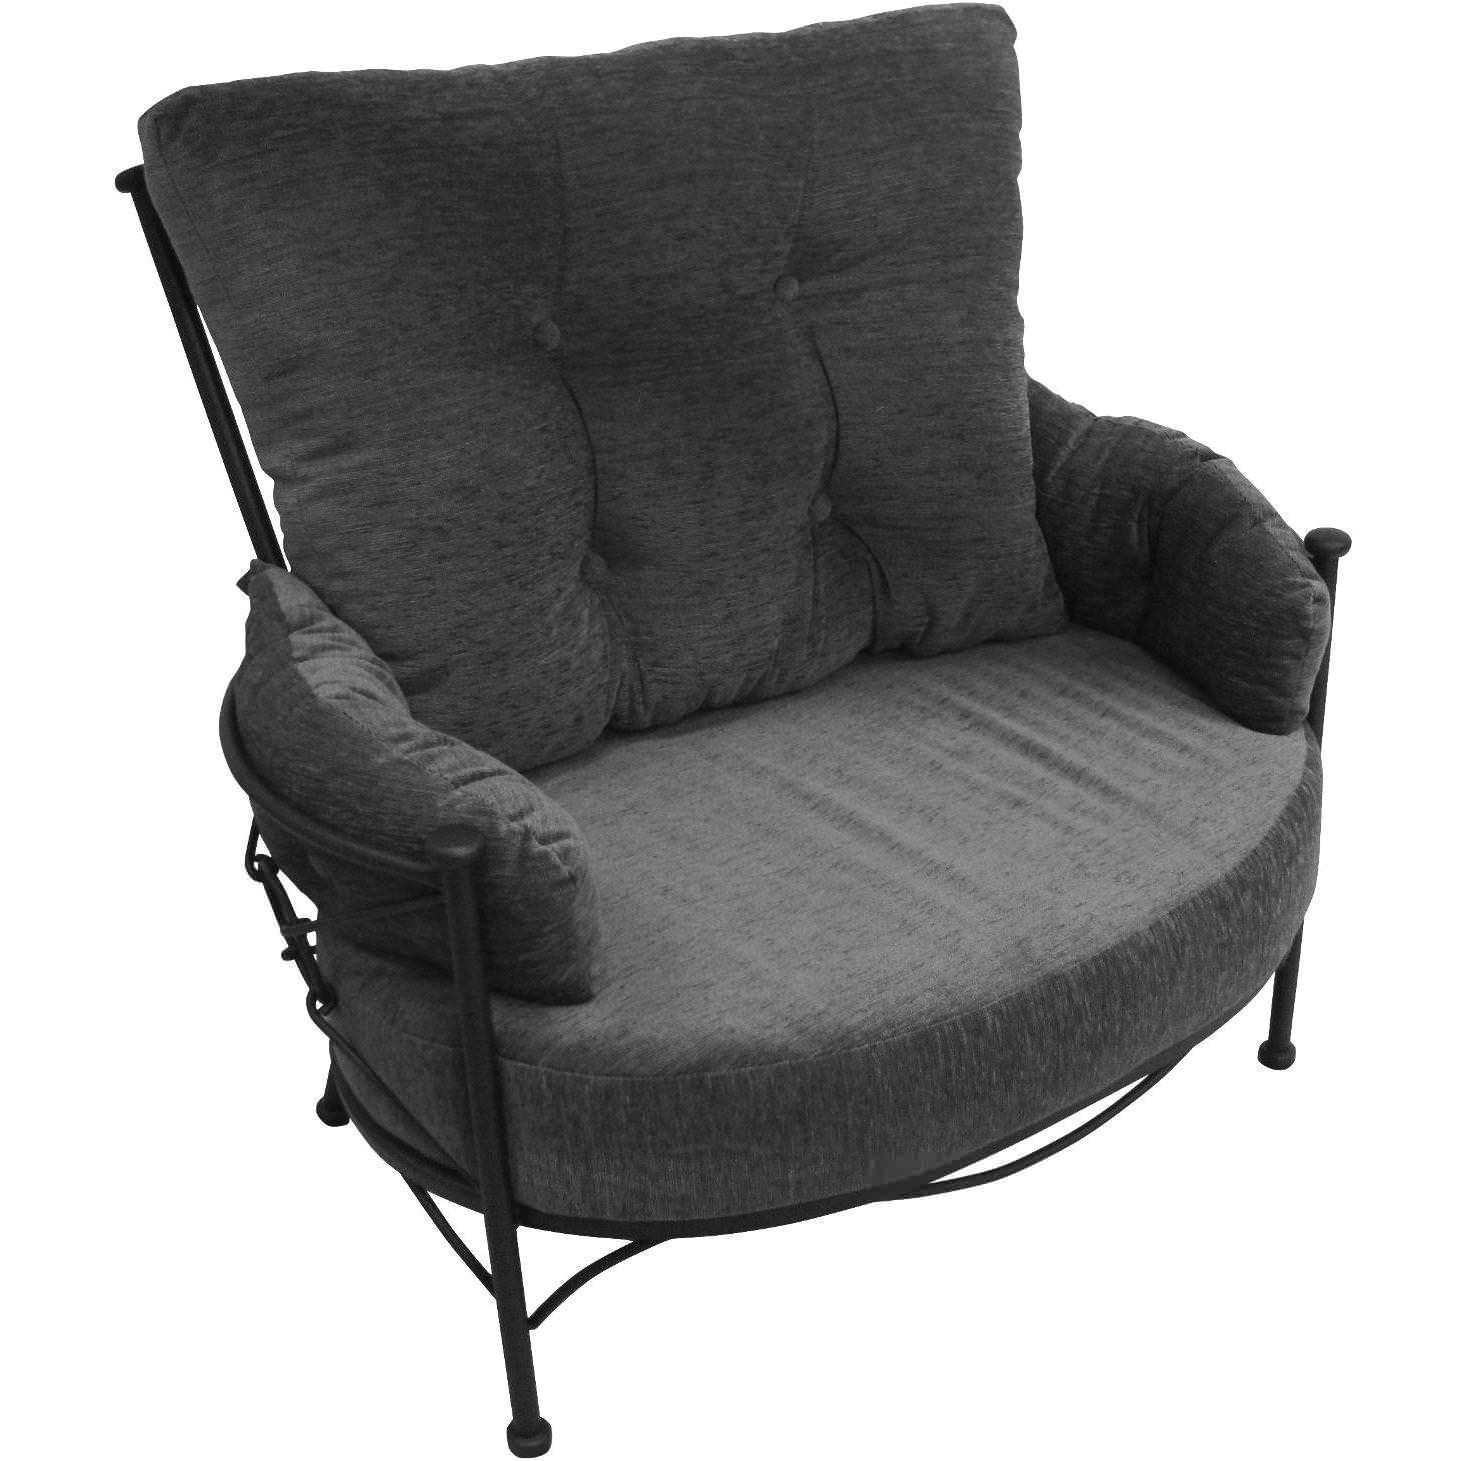 cuddle chair recliner